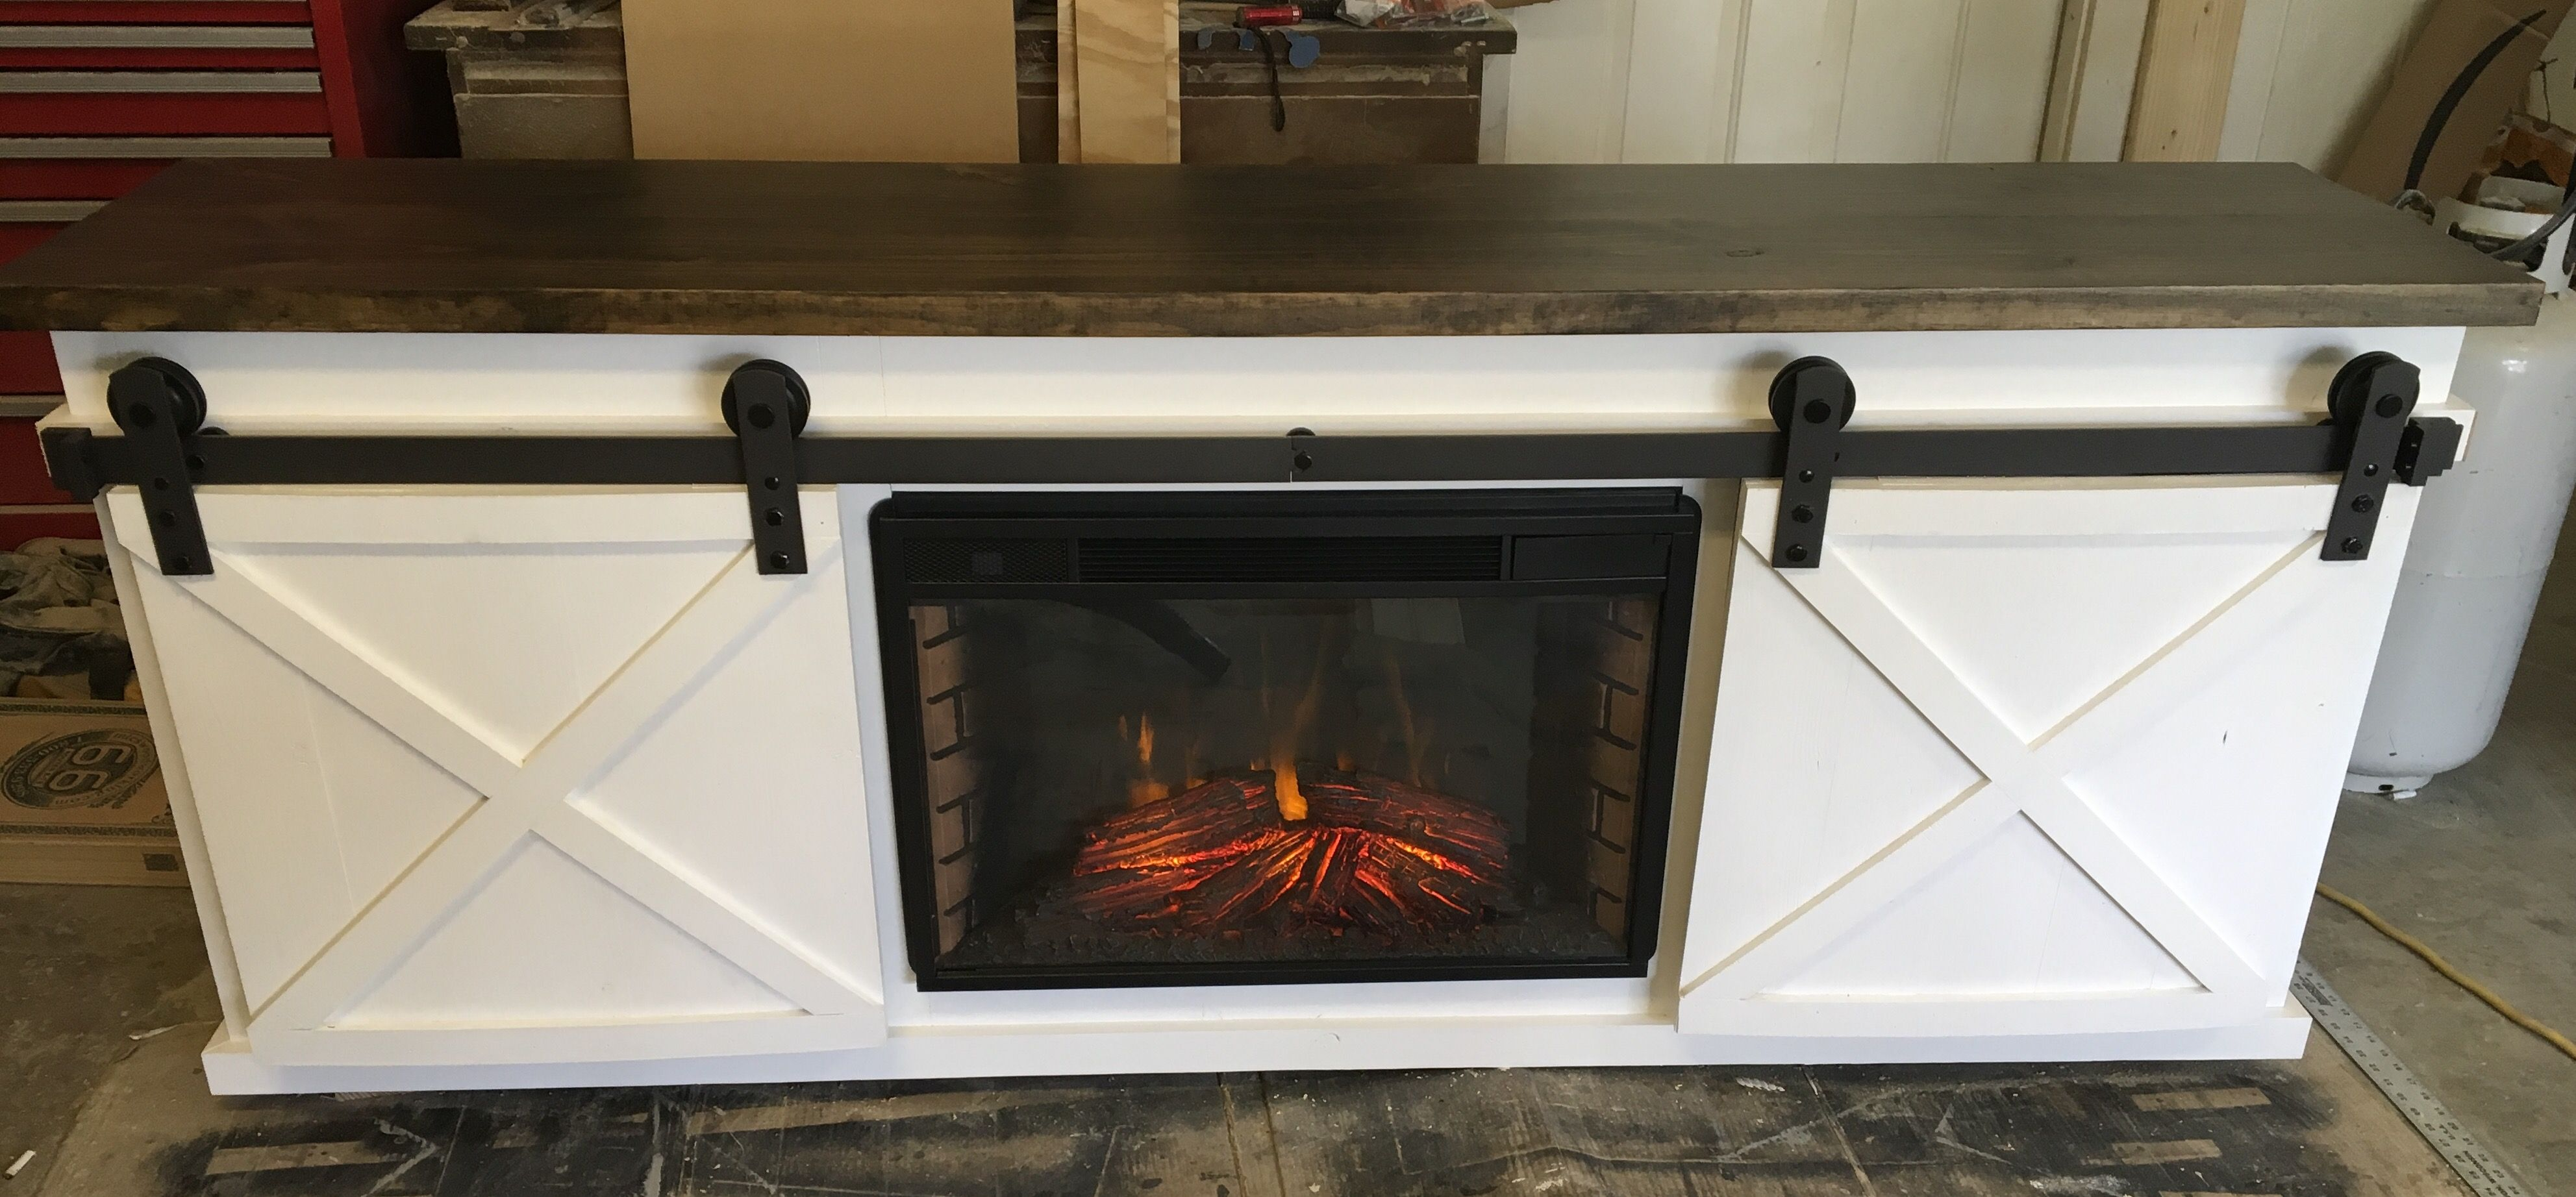 Tv Console with fireplace insert - DIY Projects | Living ...